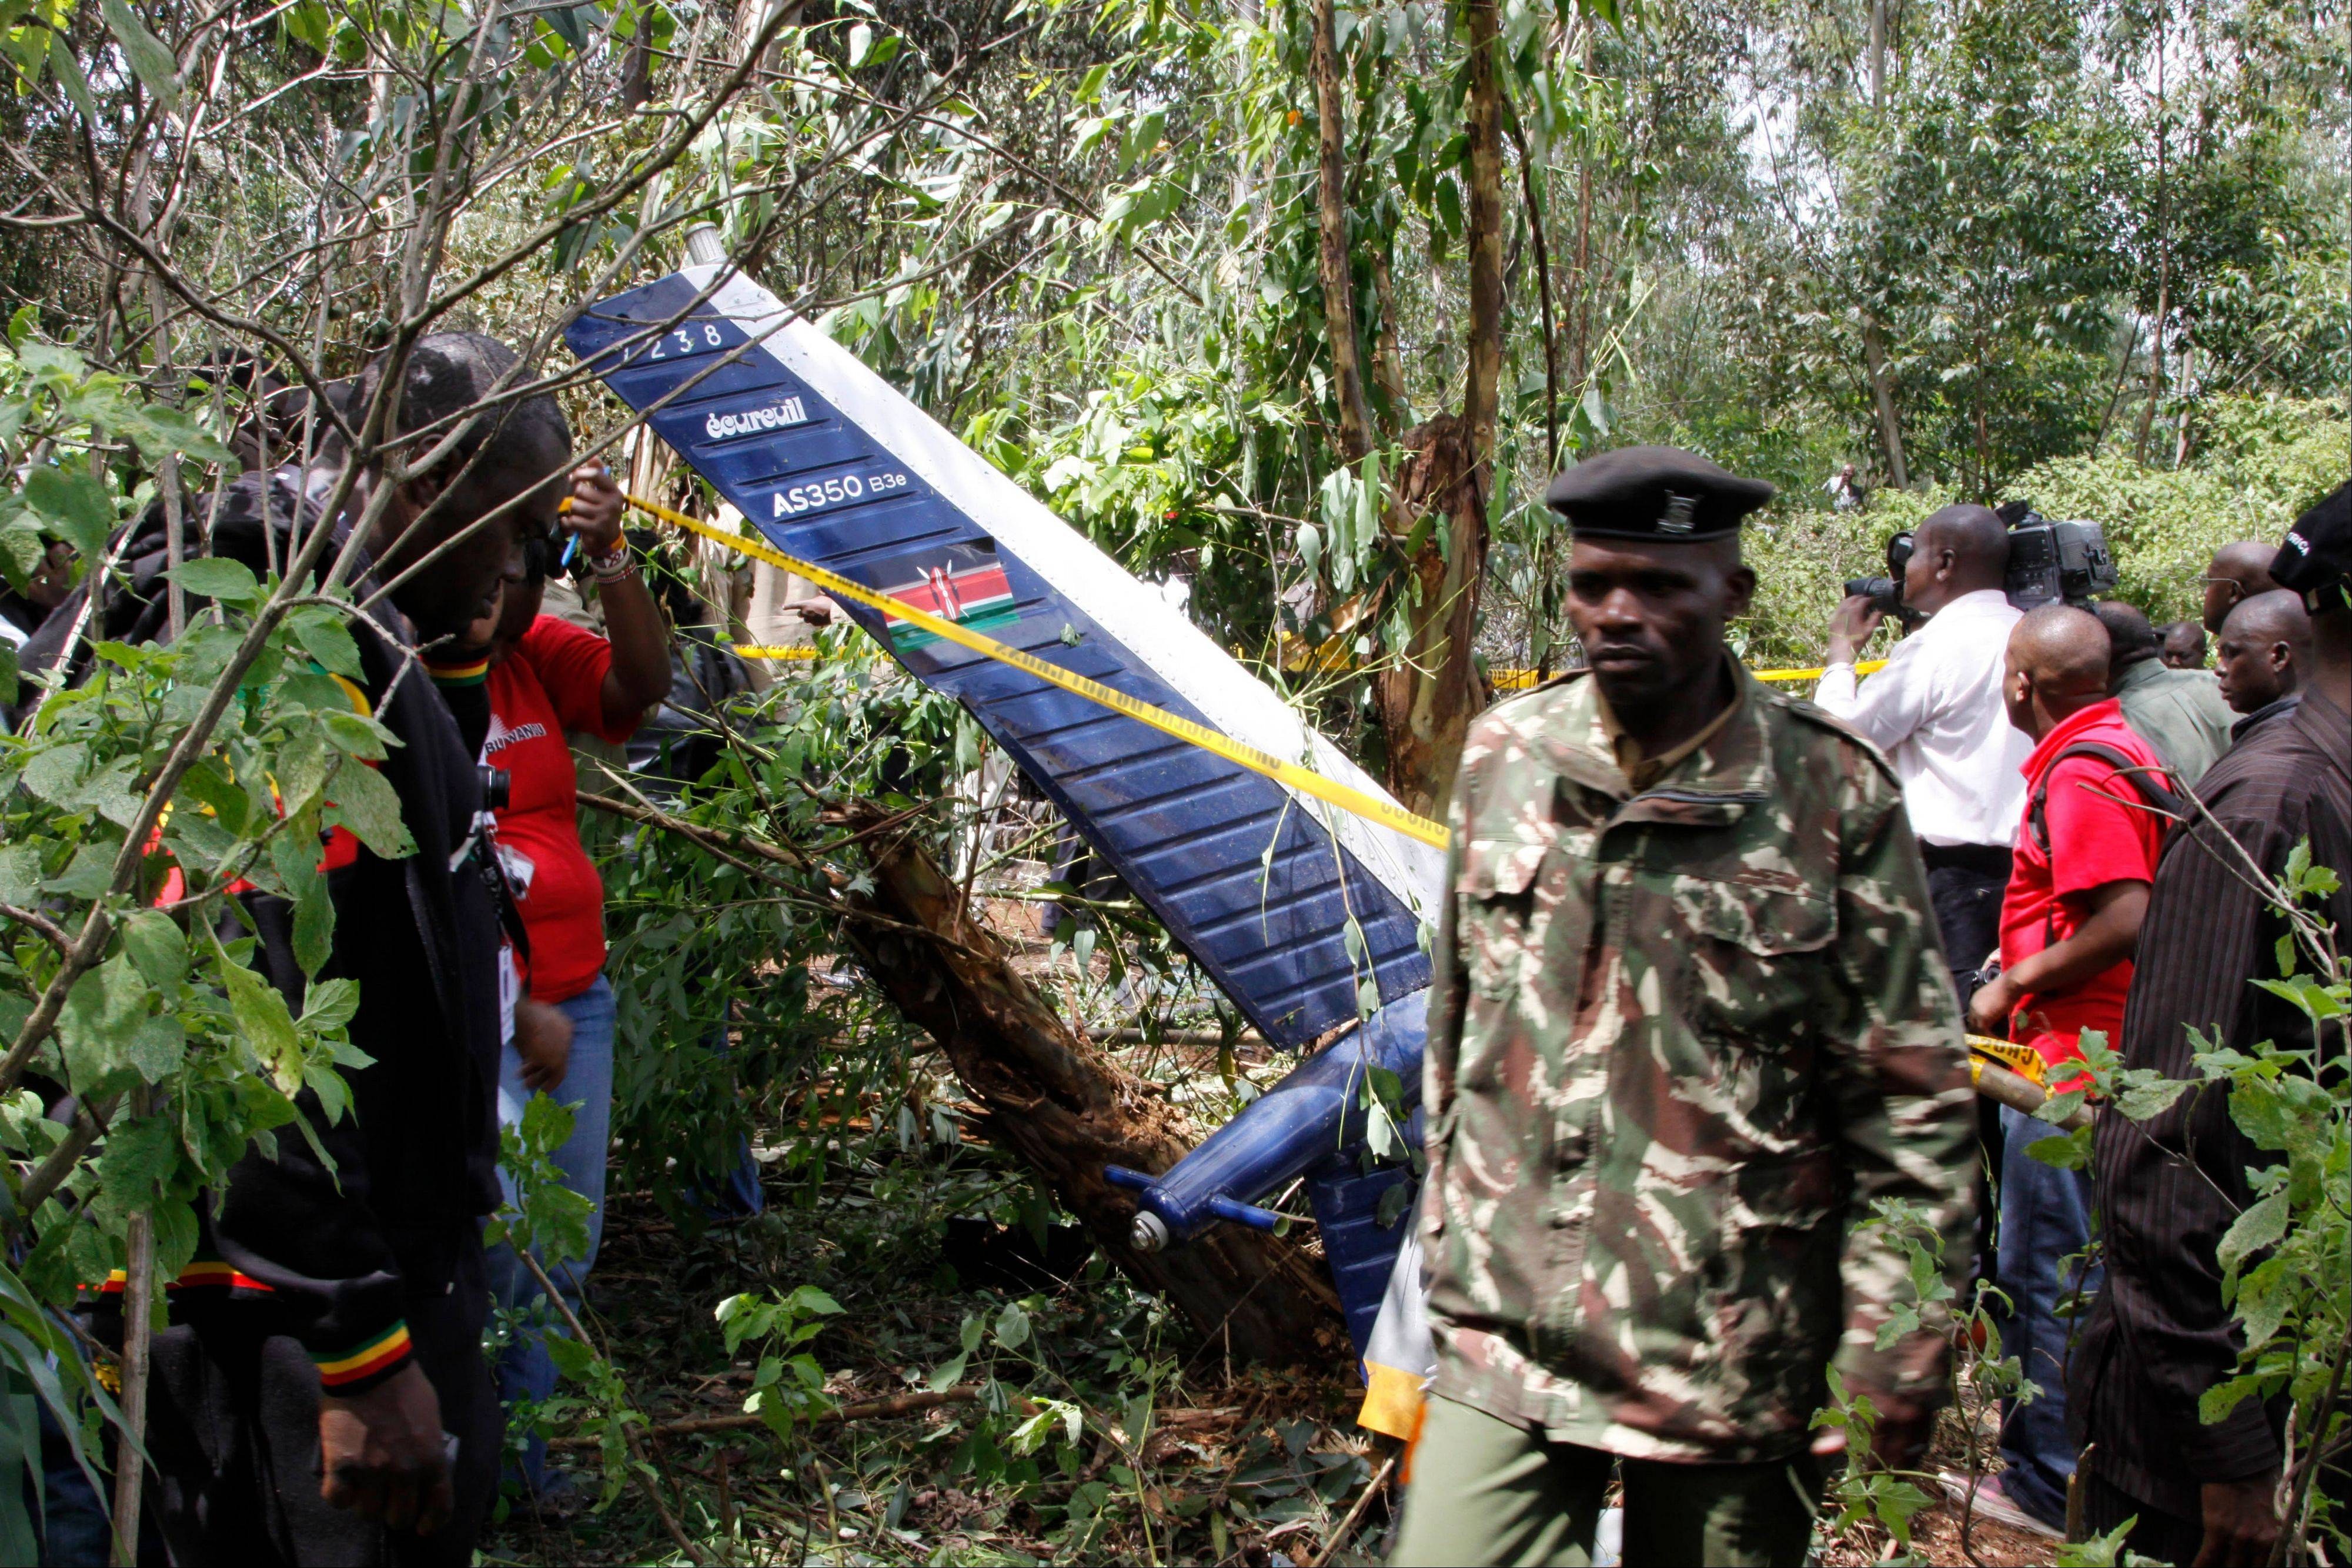 Kenyan officials inspect the area of the helicopter wreckage after it crashed Sunday in Ngong forest, on the outskirts of Nairobi, Kenya. Kenyan police say cabinet minister George Saitoti, who once served as Kenya's vice president, was one of seven people killed in a helicopter crash on the outskirts of Nairobi.